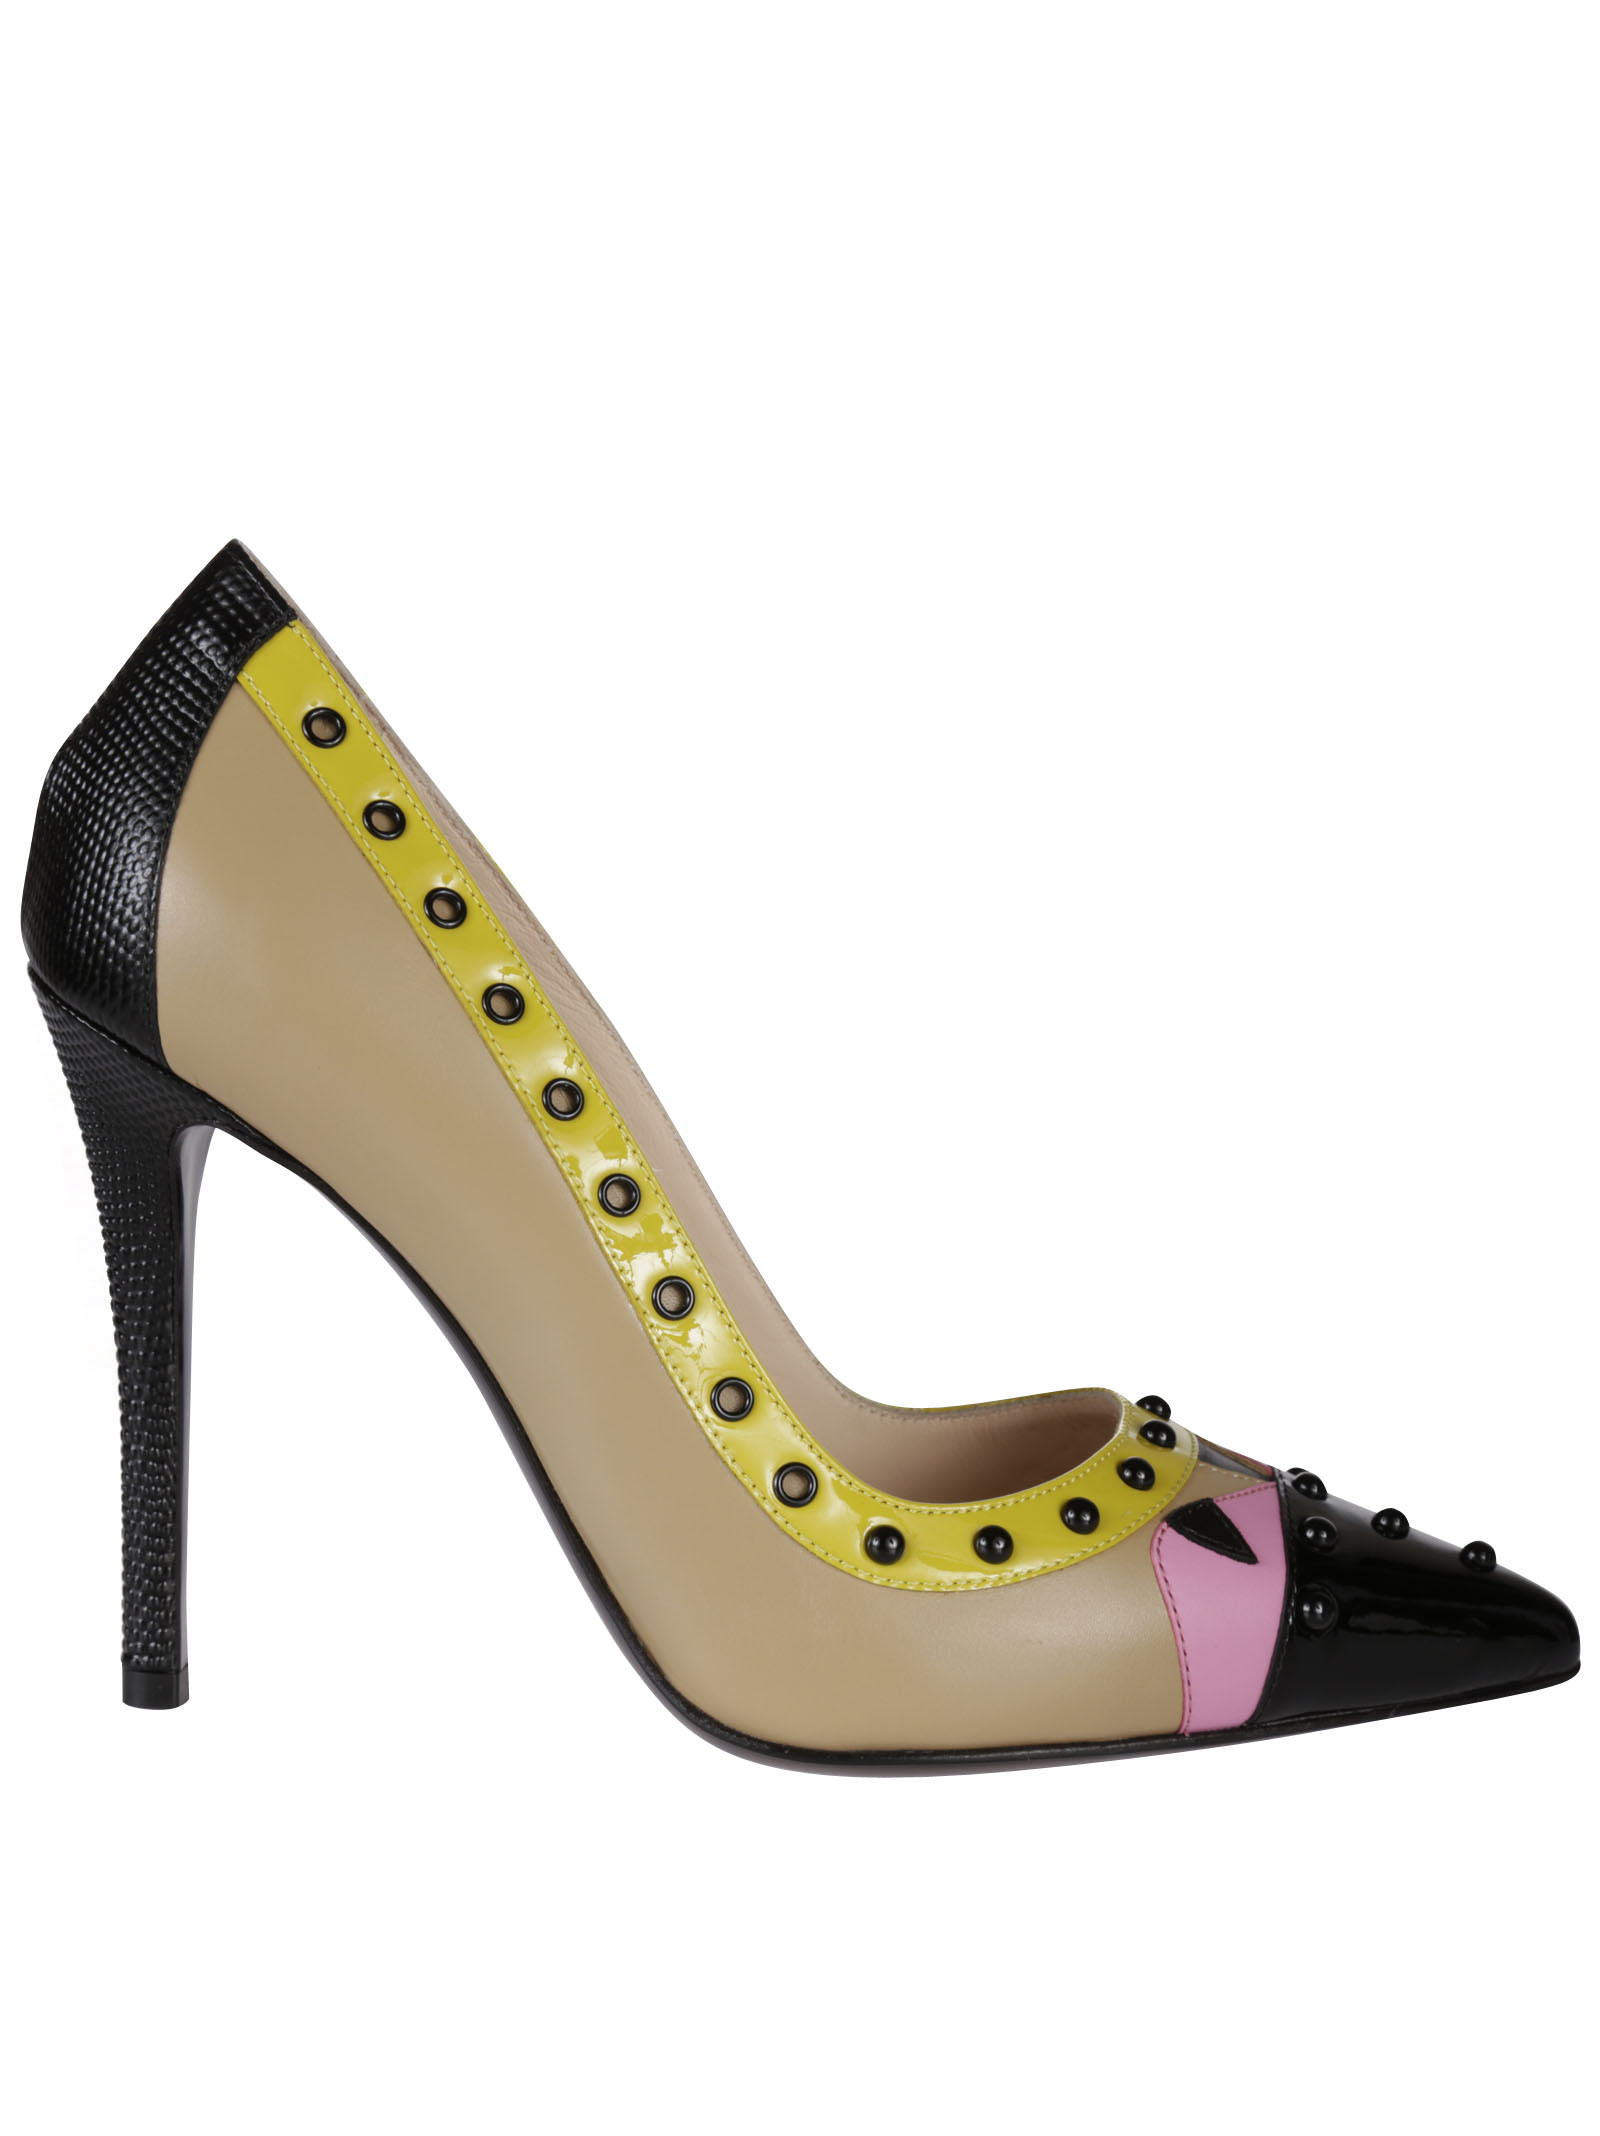 fendi fendi bag bugs pumps 8i5105 5hk f0814 s